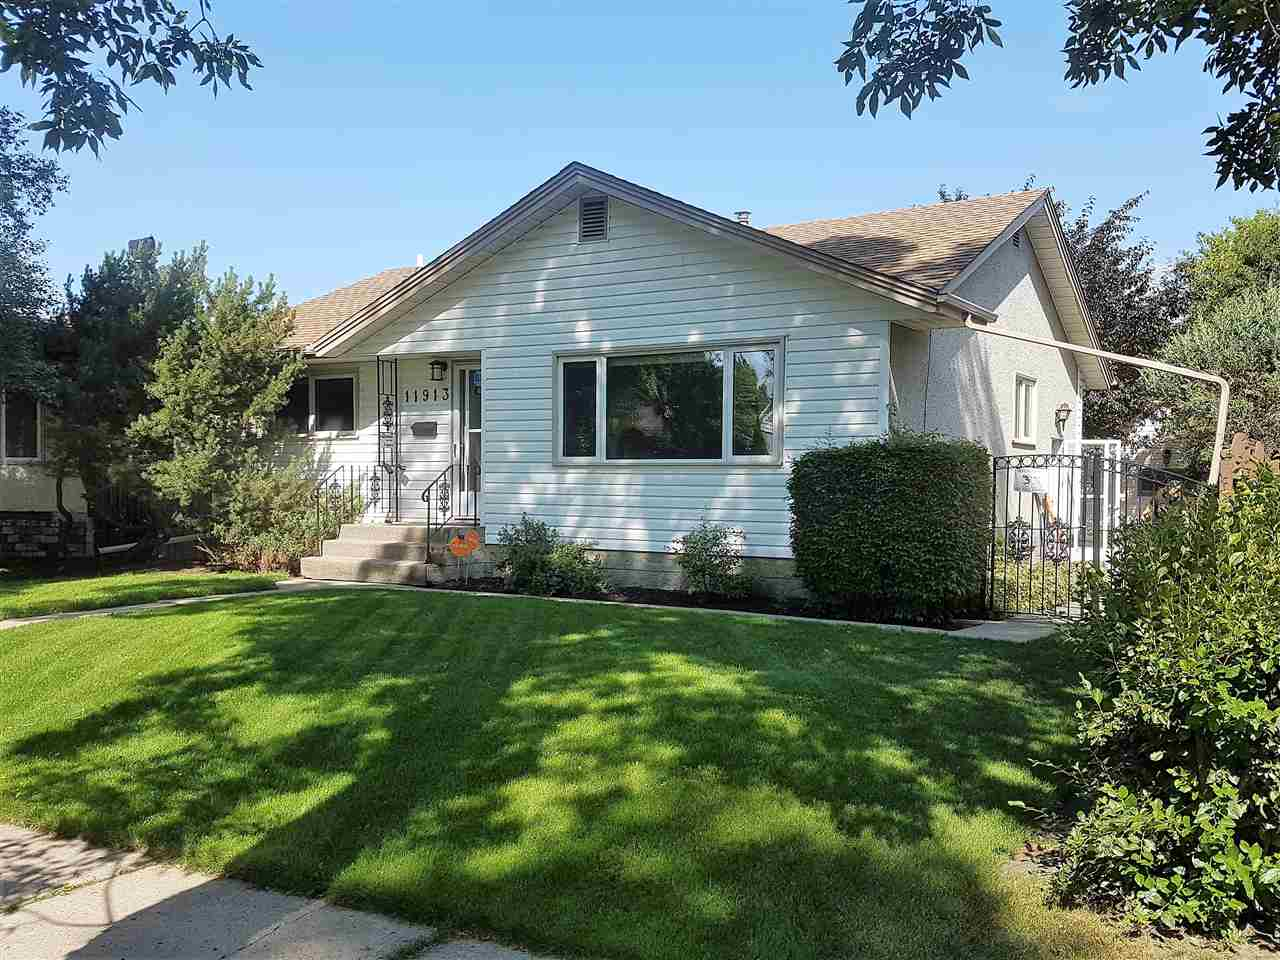 Main Photo: 11913 38 Street in Edmonton: Zone 23 House for sale : MLS® # E4072830